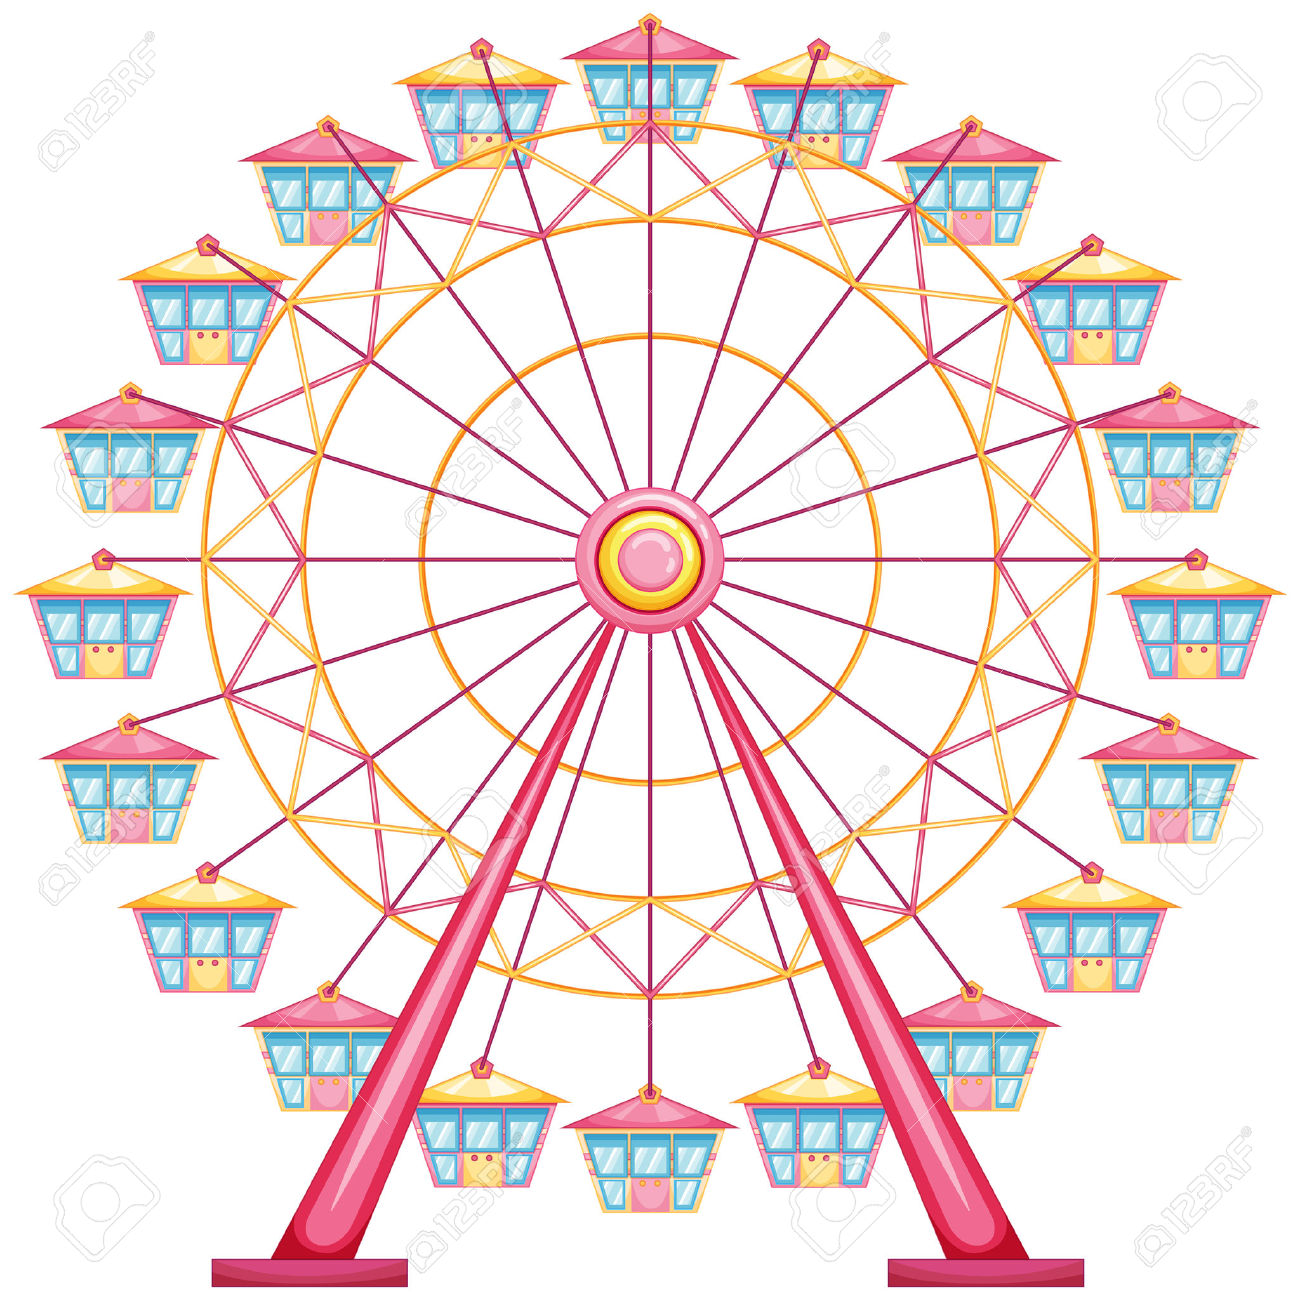 Simple Ferris Wheel Drawing at GetDrawings.com.